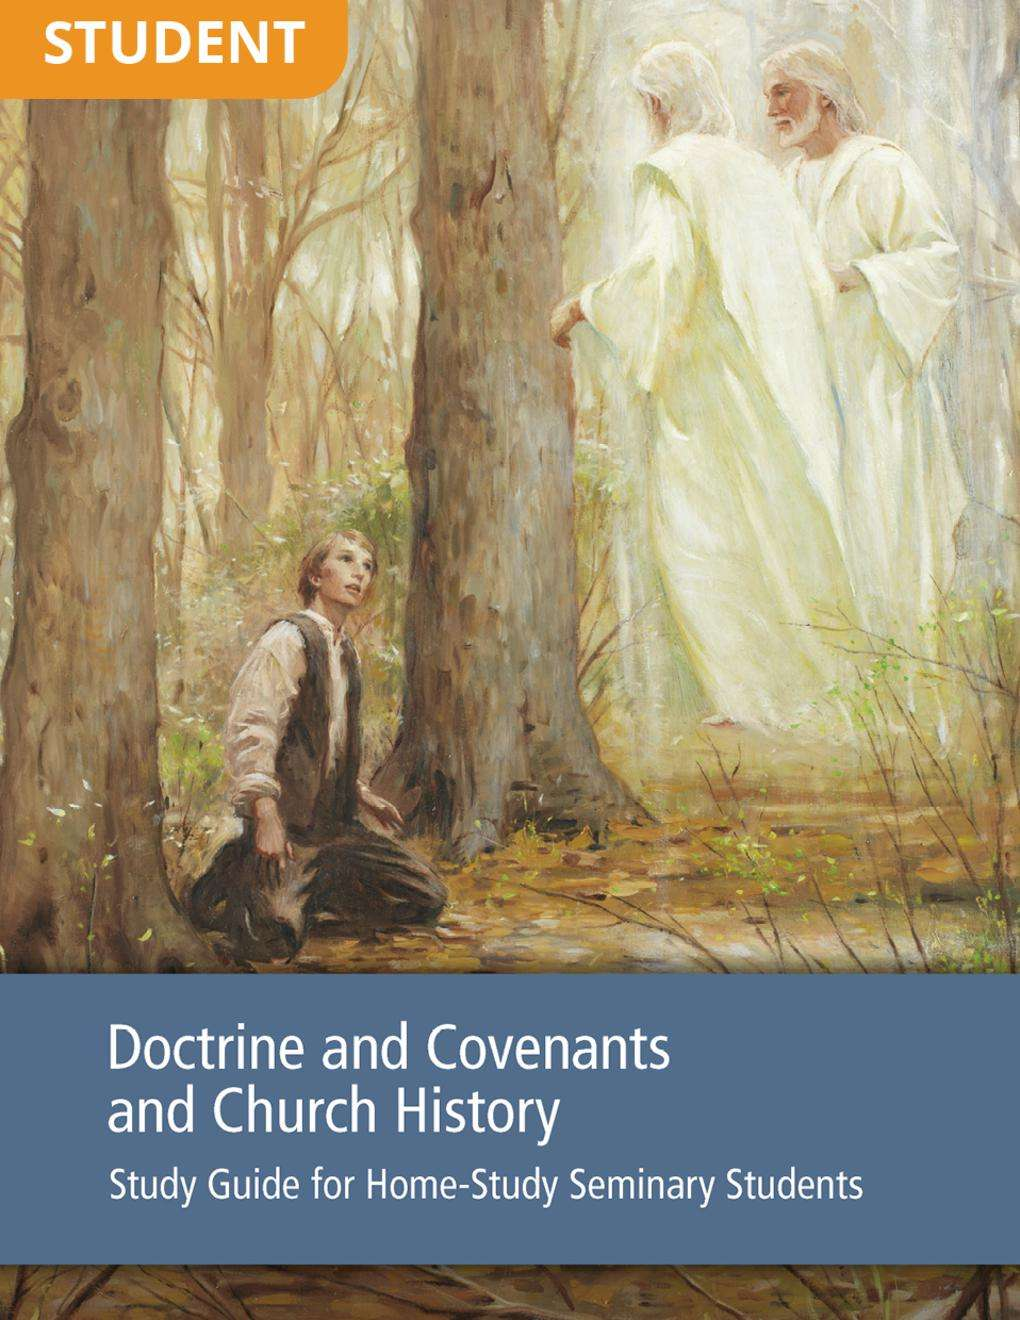 Doctrine and Covenants and Church History Study Guide for Home-Study Seminary Students